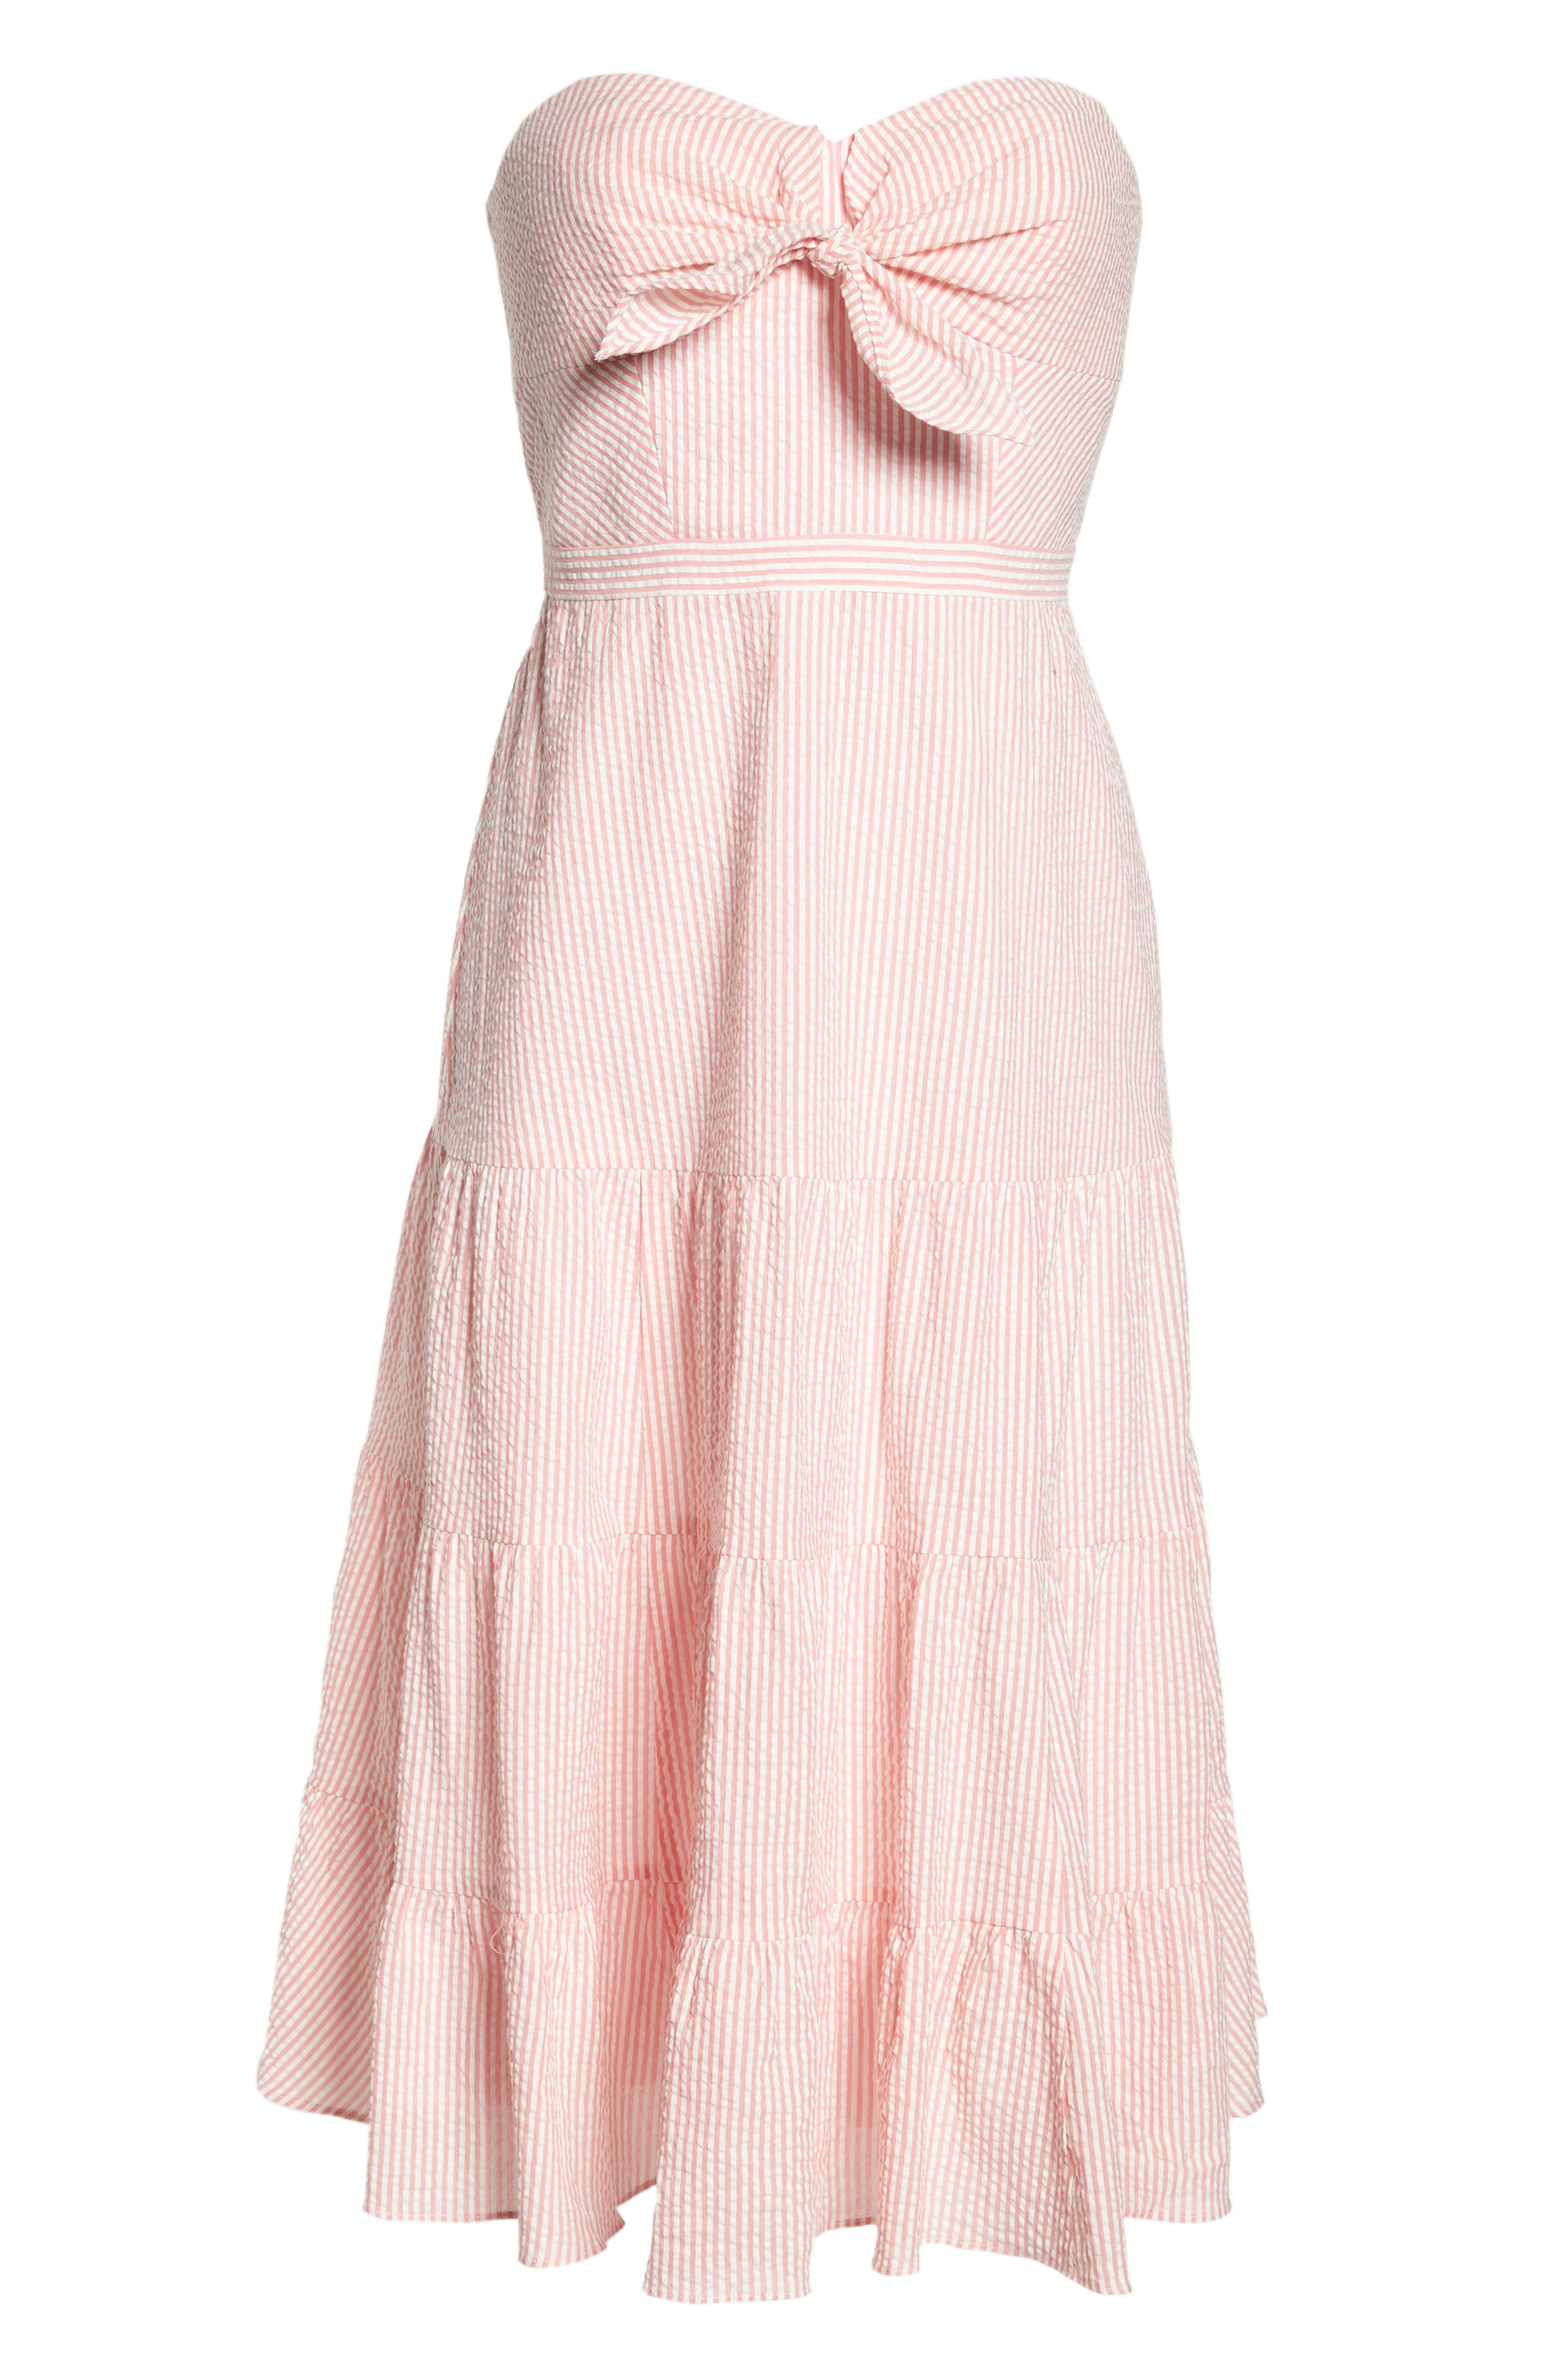 J.Crew Tie Front Strapless Dress,                             Alternate thumbnail 7, color,                             Bright Coral